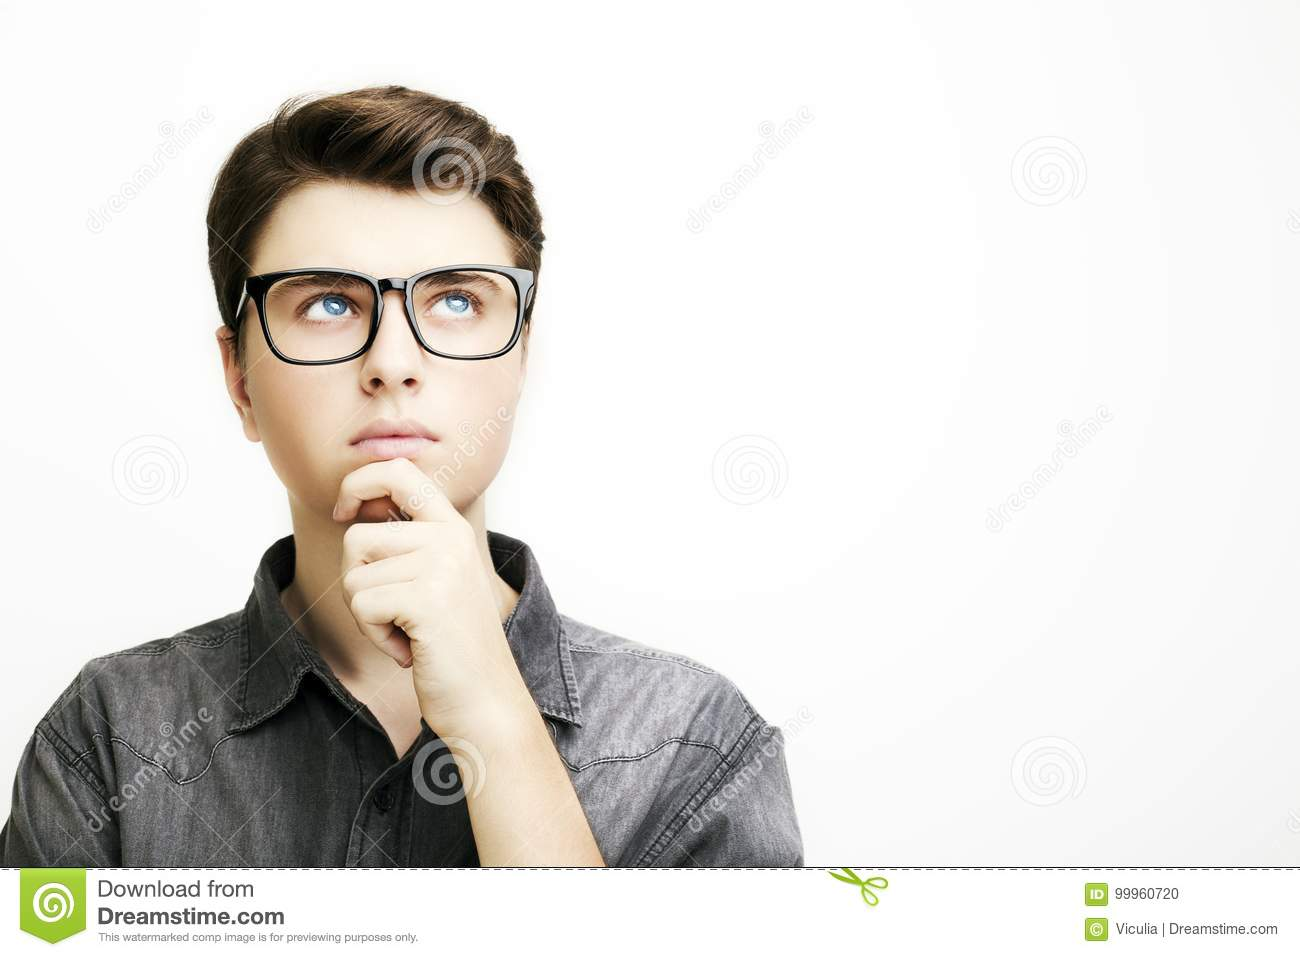 Young man with glasses is thinking on white background.